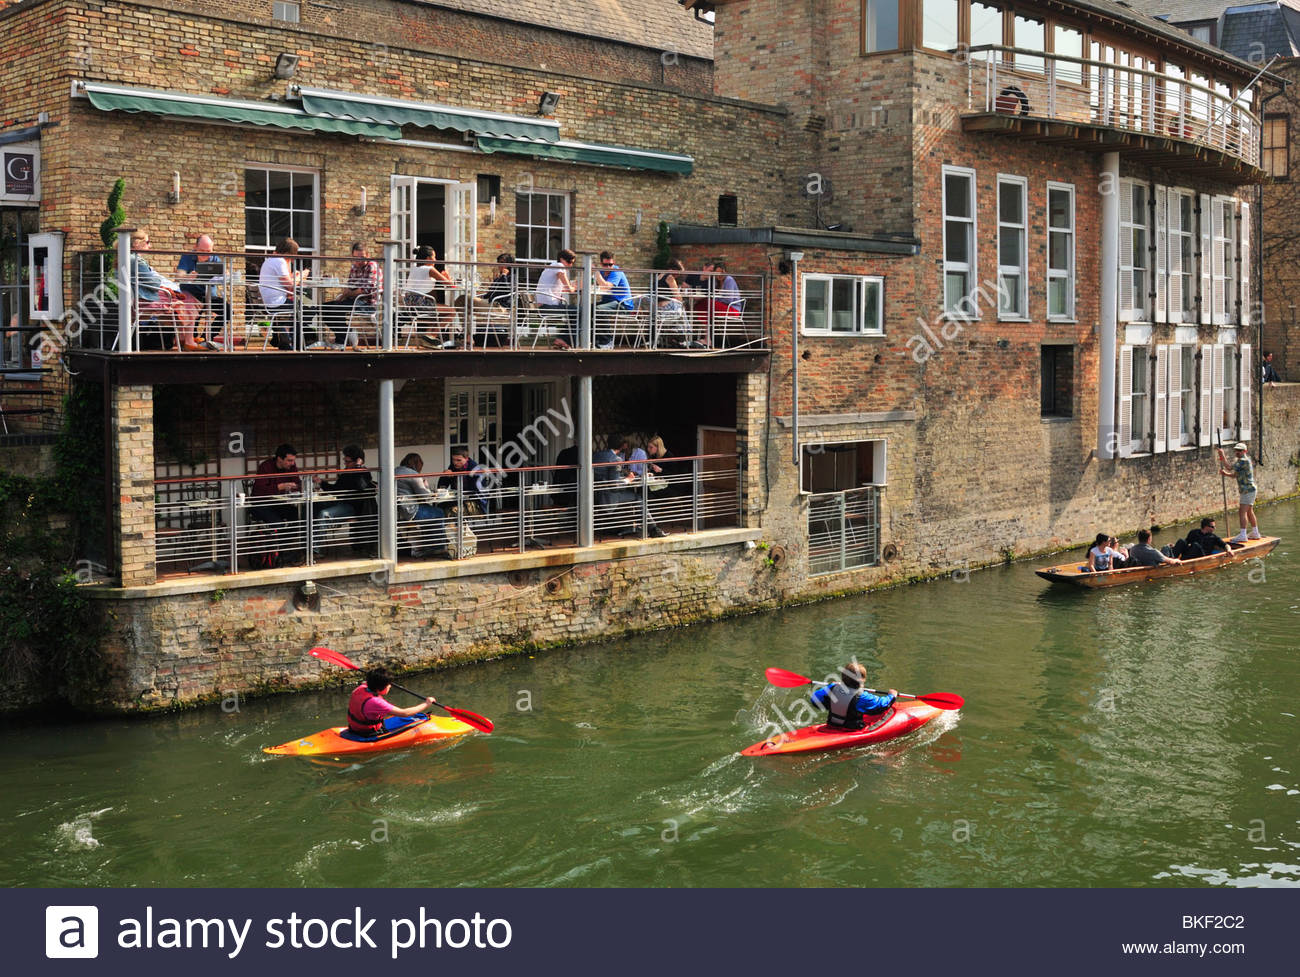 People in riverside Bar watching Punters and Canoeists on the River Cam, Cambridge - Stock Image